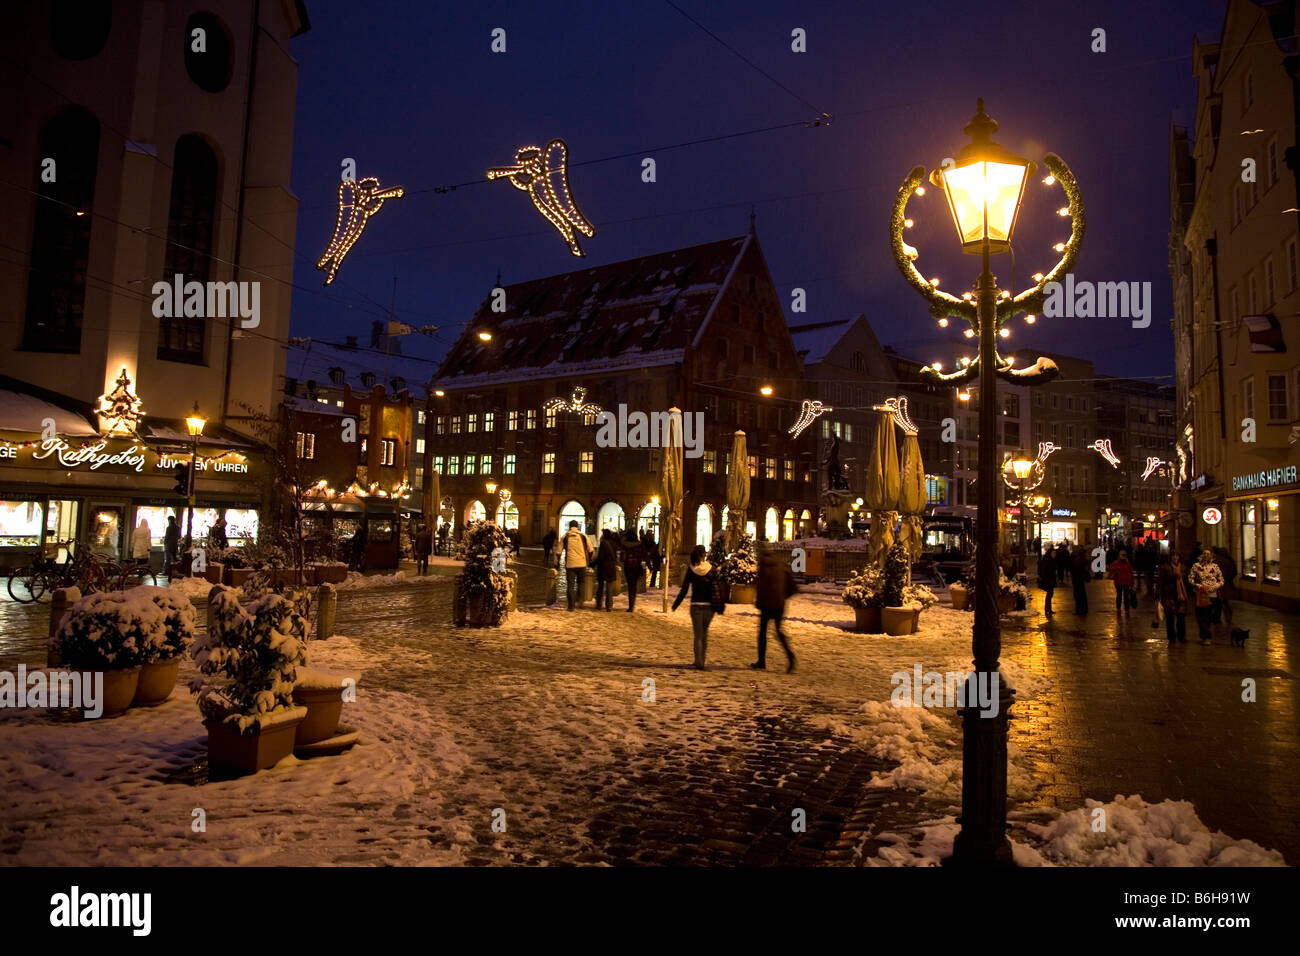 People walk along a snowy evening street in the charming town of Augsburg in Bavaria, Germany. - Stock Image